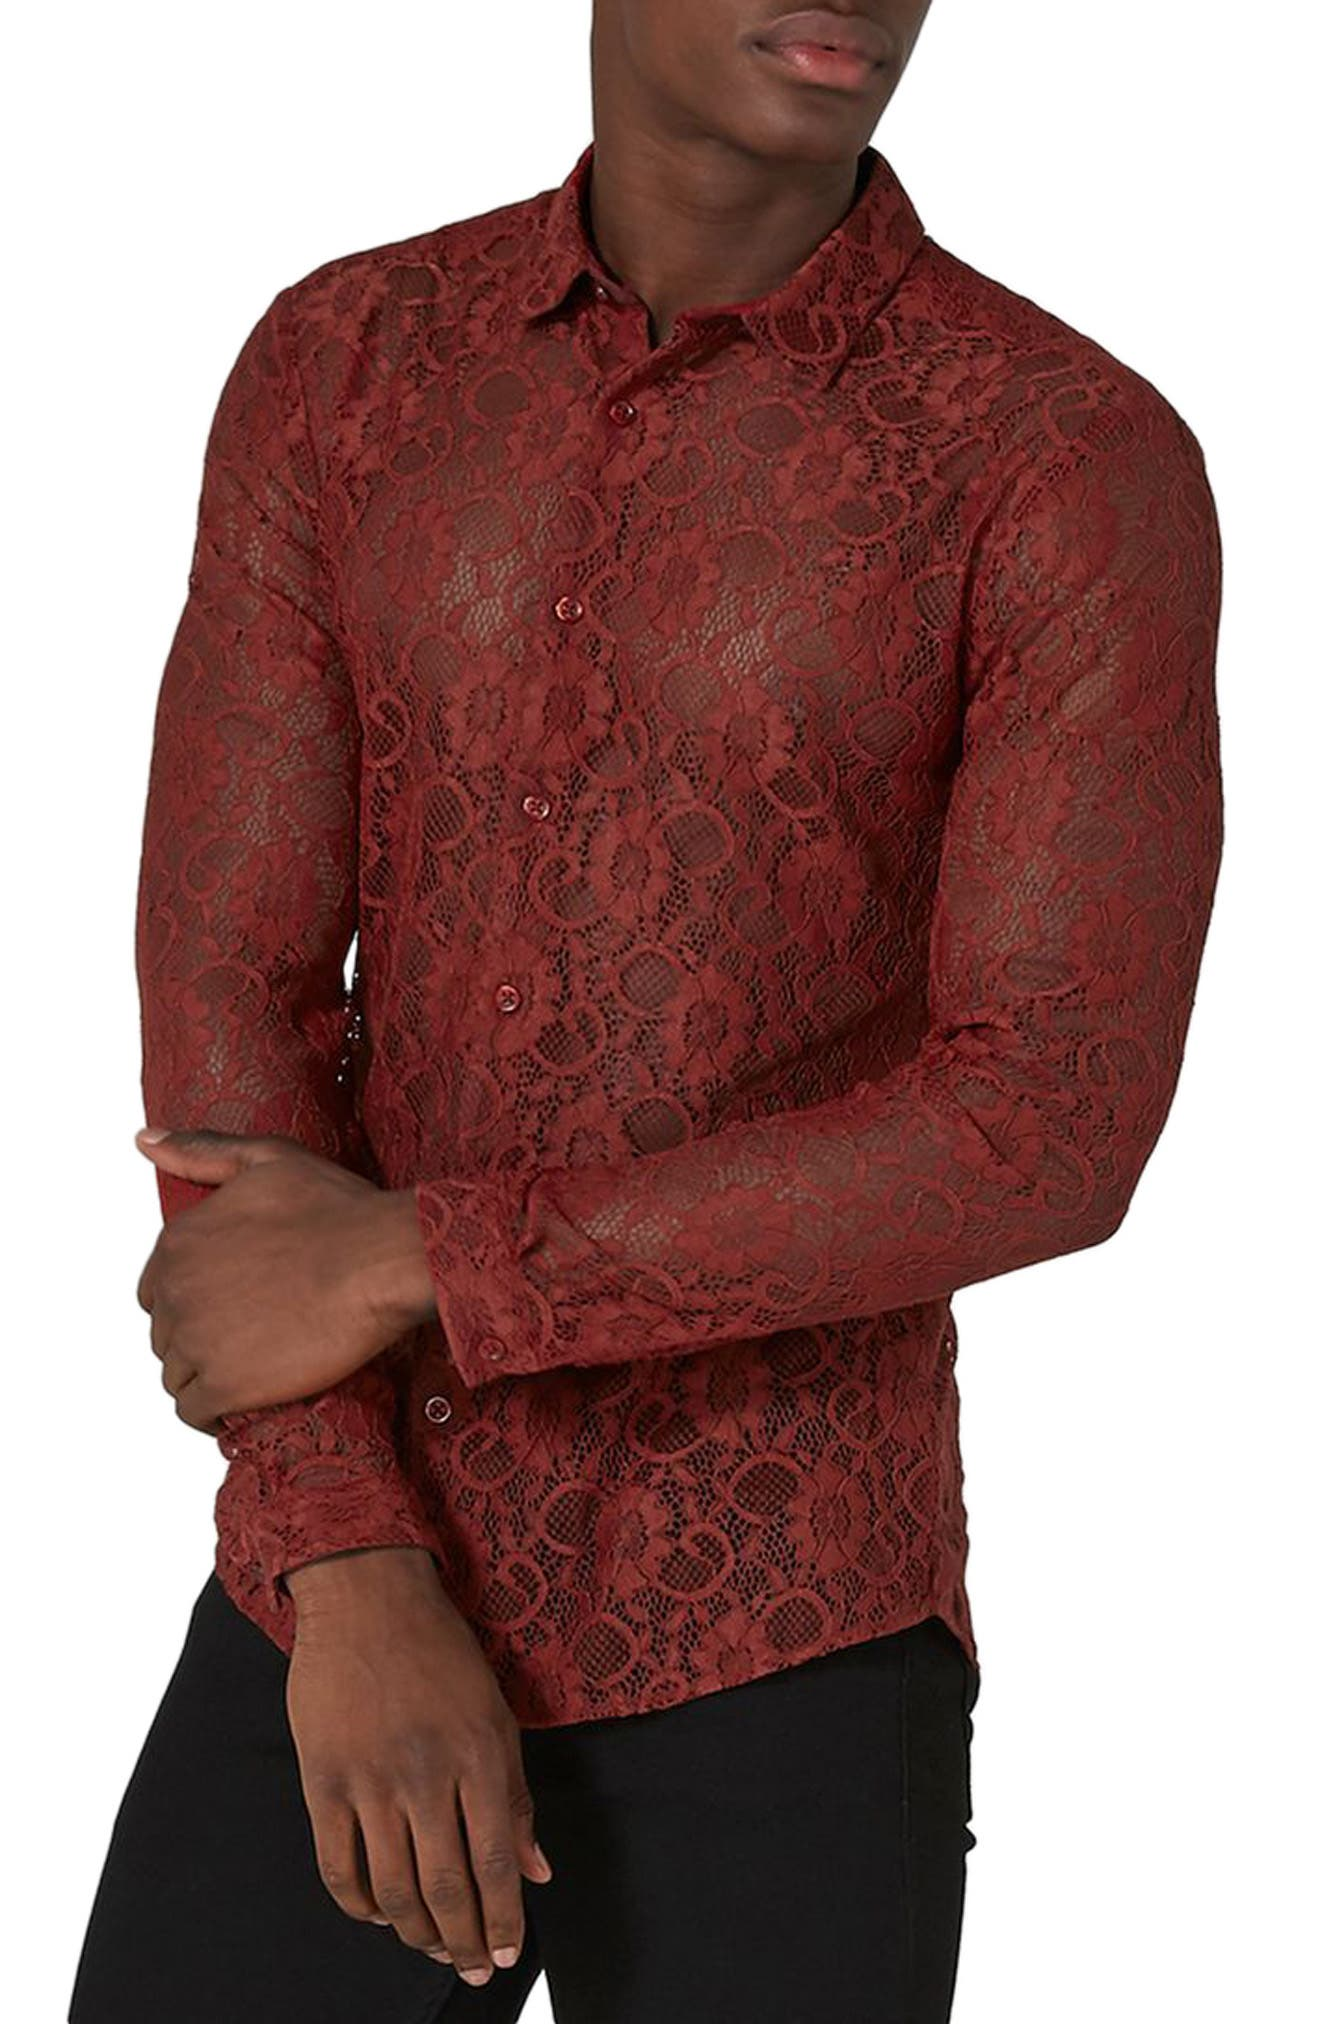 Muscle Fit Sheer Lace Shirt,                             Main thumbnail 1, color,                             Red